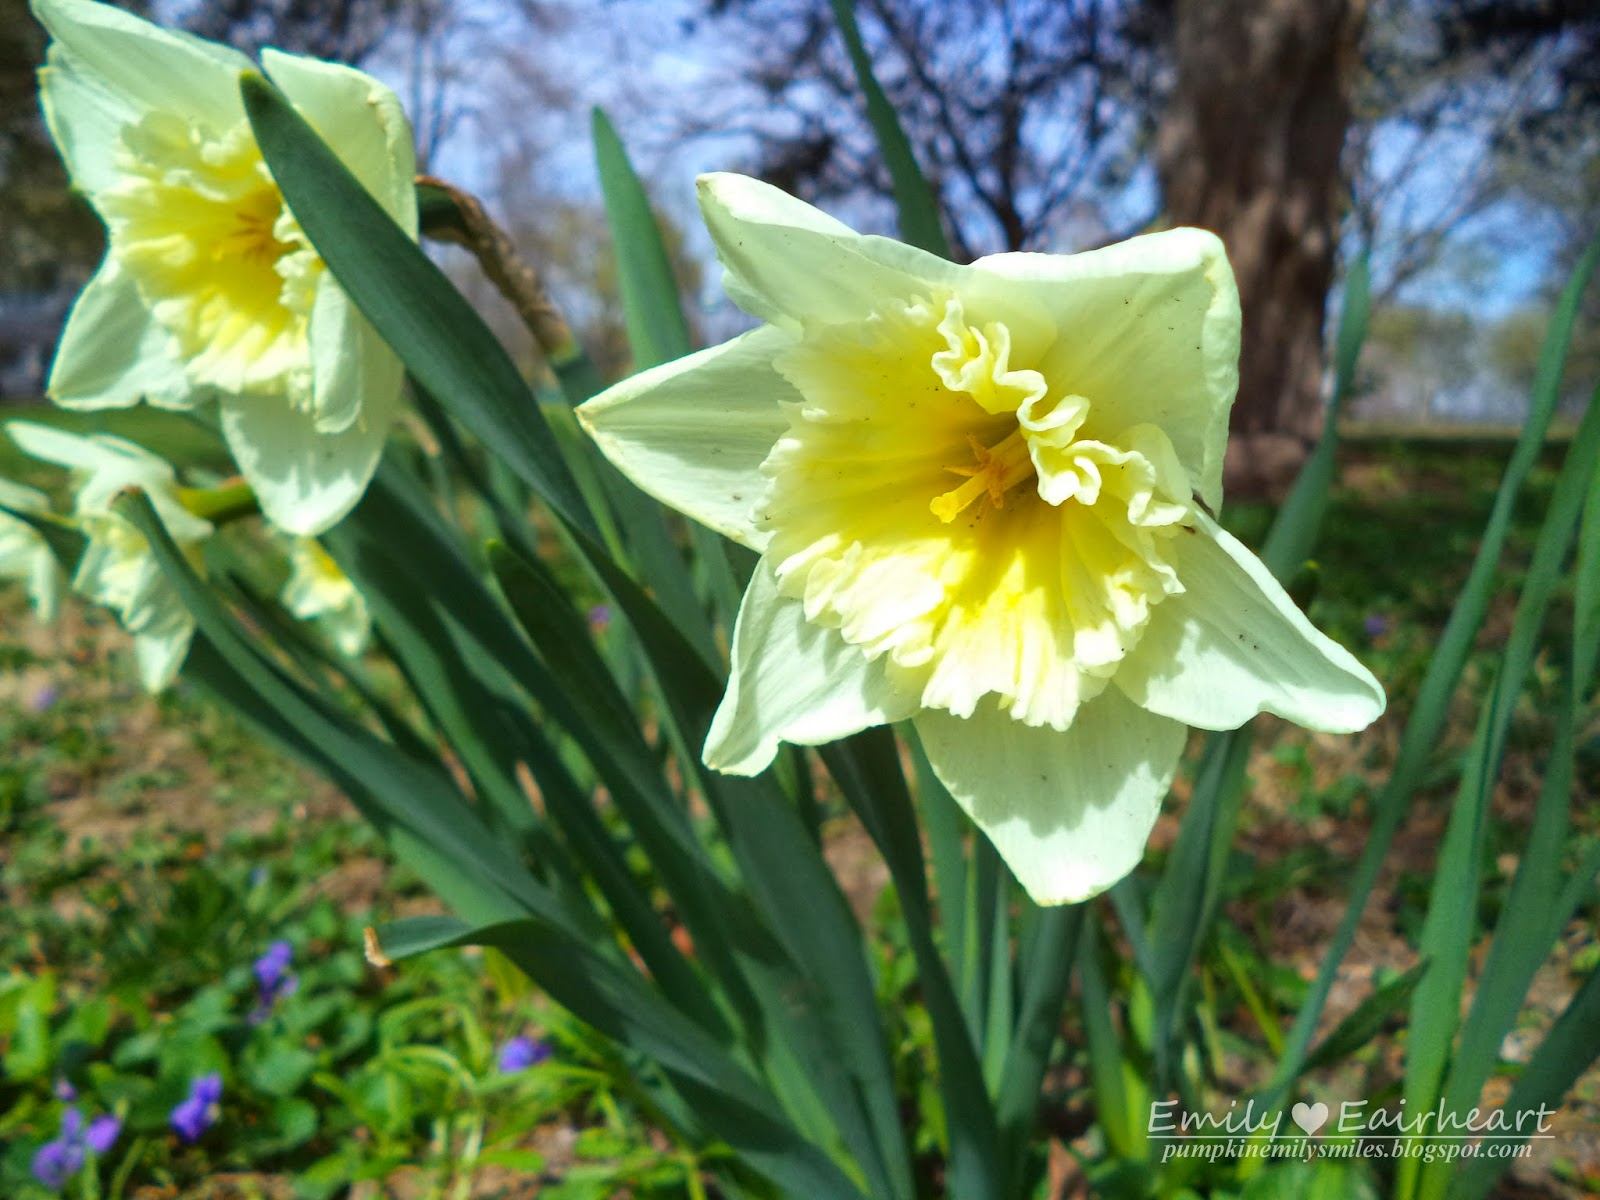 Mostly white and some faded yellow Daffodil.